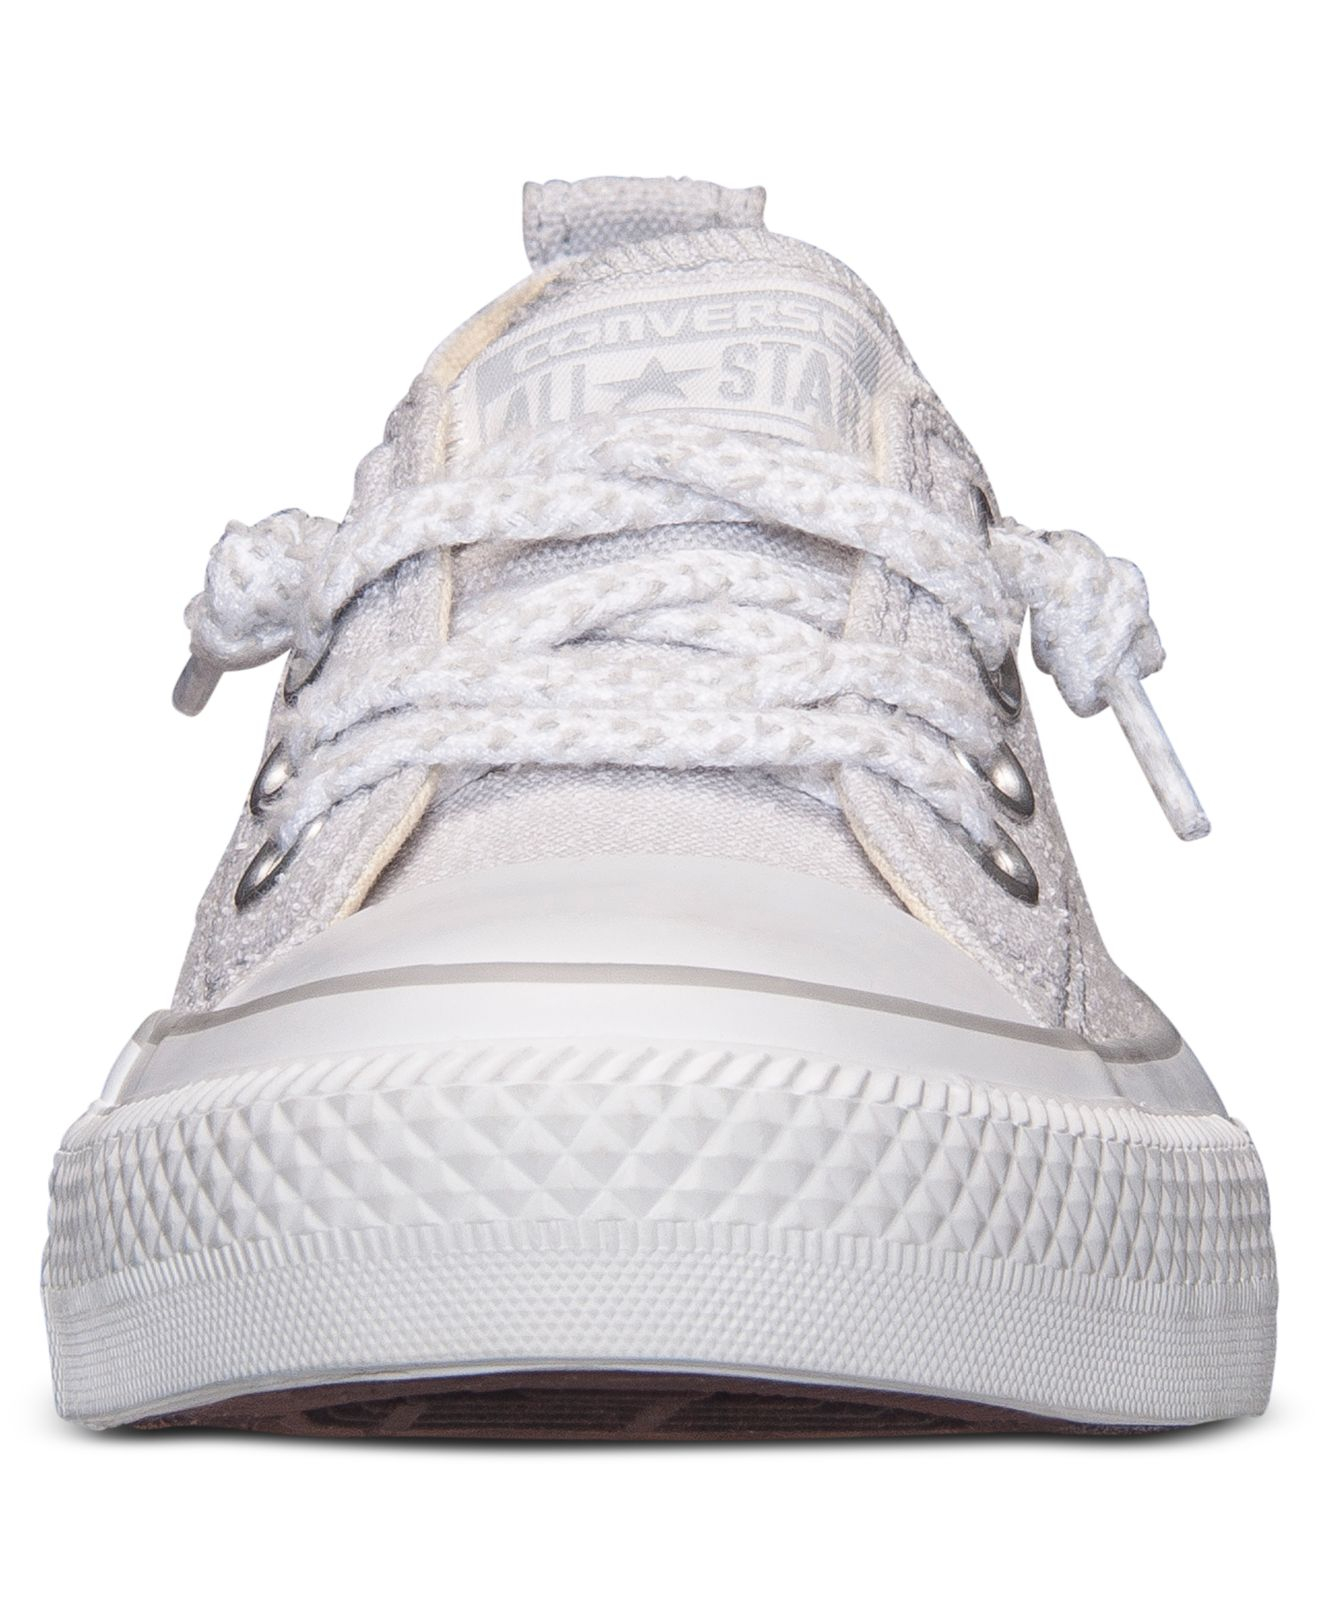 275cf2b27f2 Lyst - Converse Women S Chuck Taylor Shoreline Slub Linen Casual Sneakers  From Finish Line in Natural